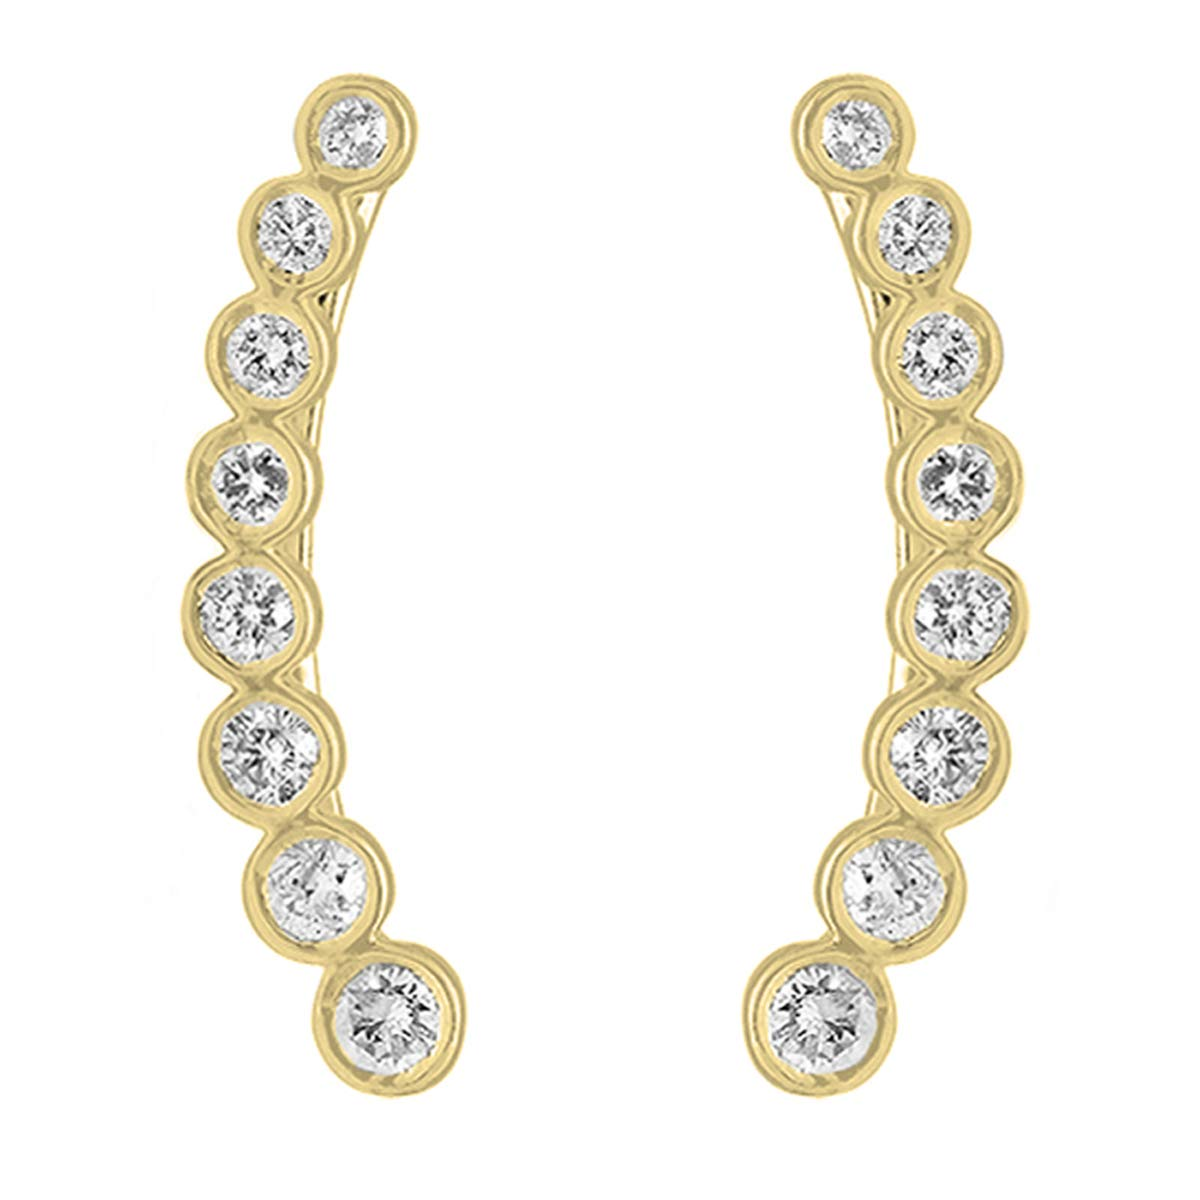 Dazzlingrock Collection 0.60 Carat (ctw) 14K Round White Diamond Ladies Journey Curved Climber Earrings, Yellow Gold